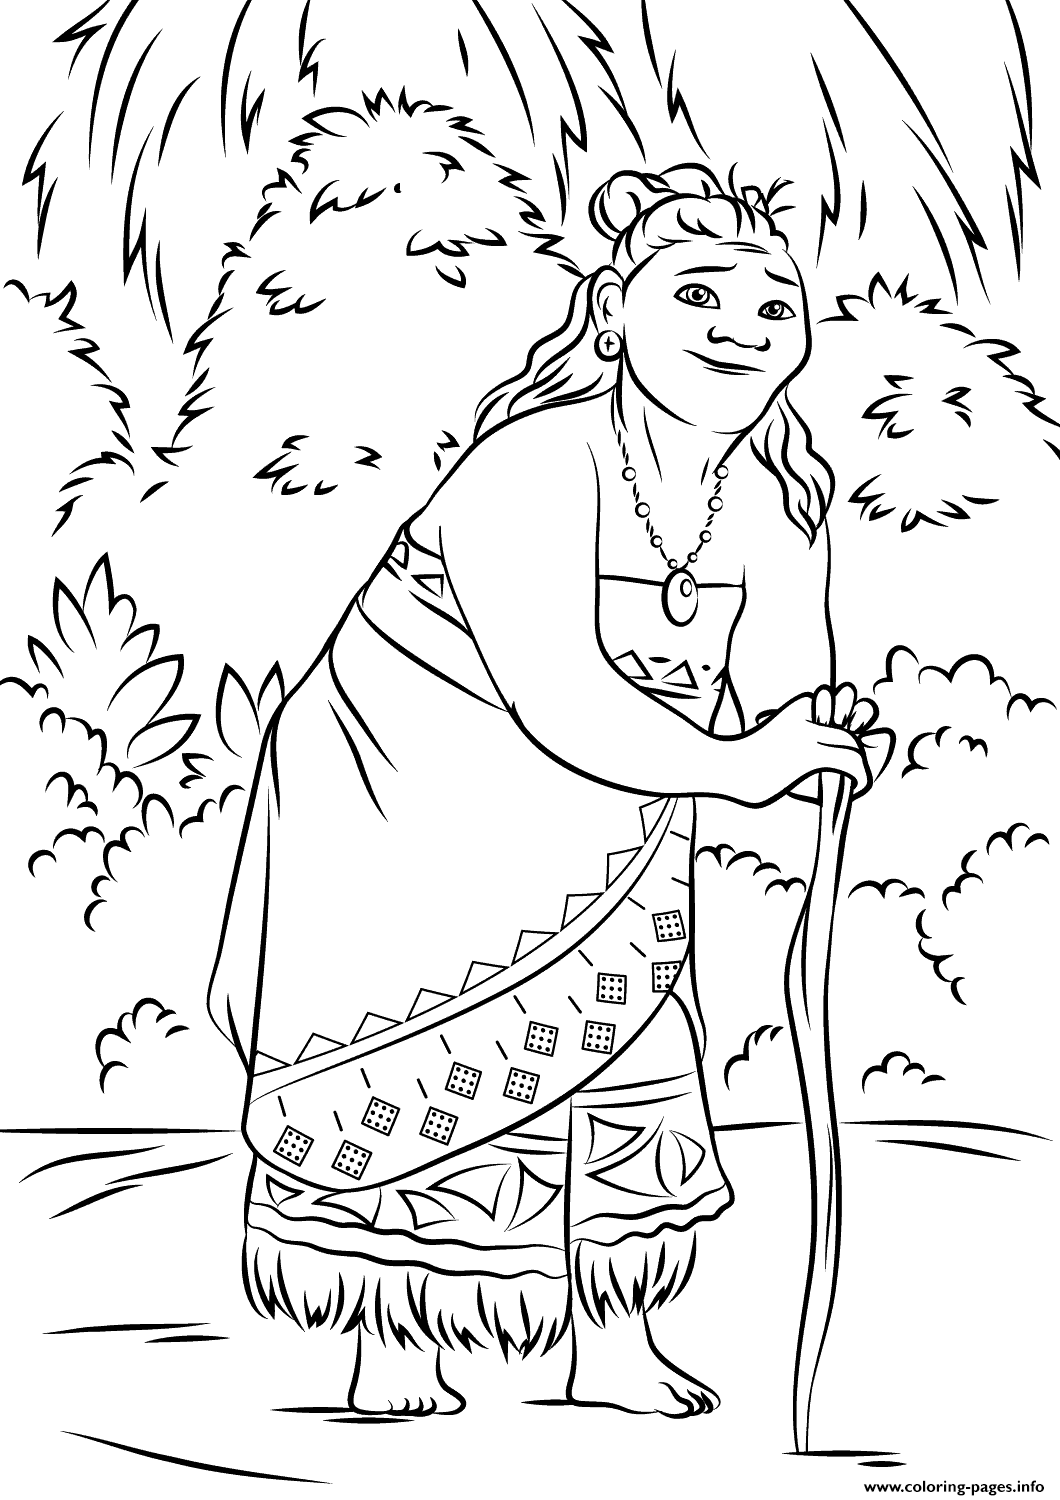 Gramma Tala From Moana Disney  coloring pages